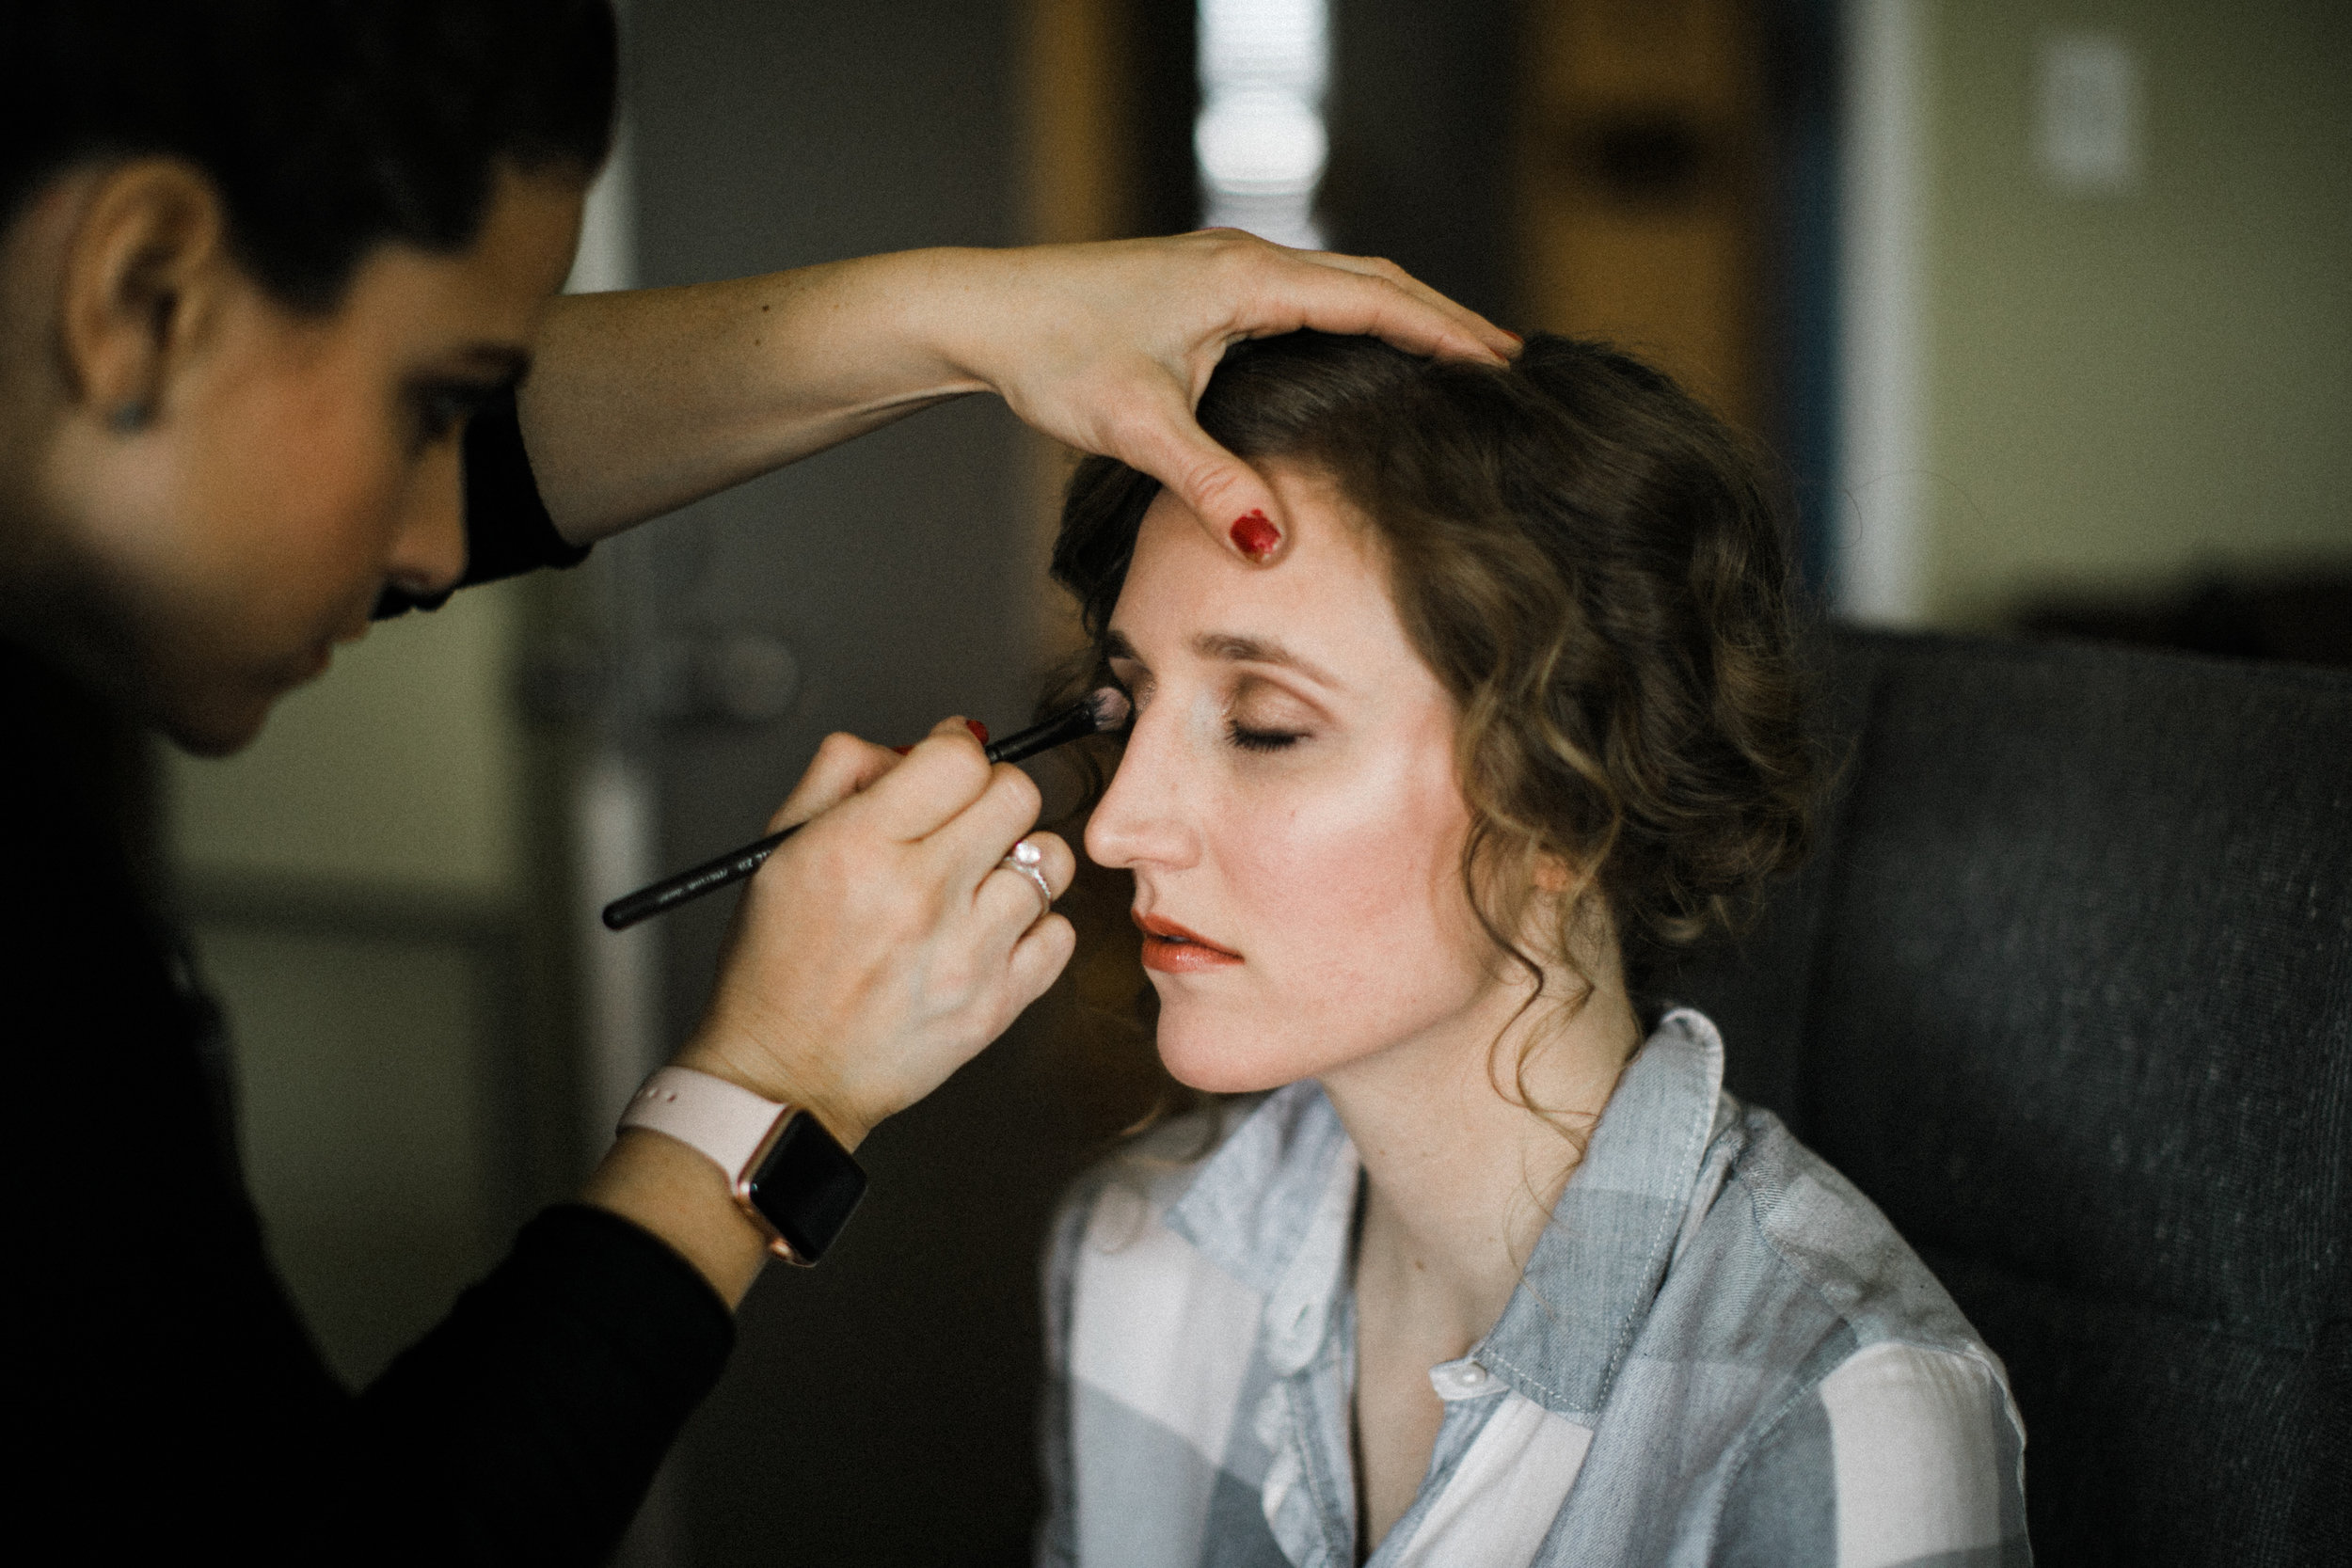 Makeup for Wedding Photography: 5 Tips to Look Your Best